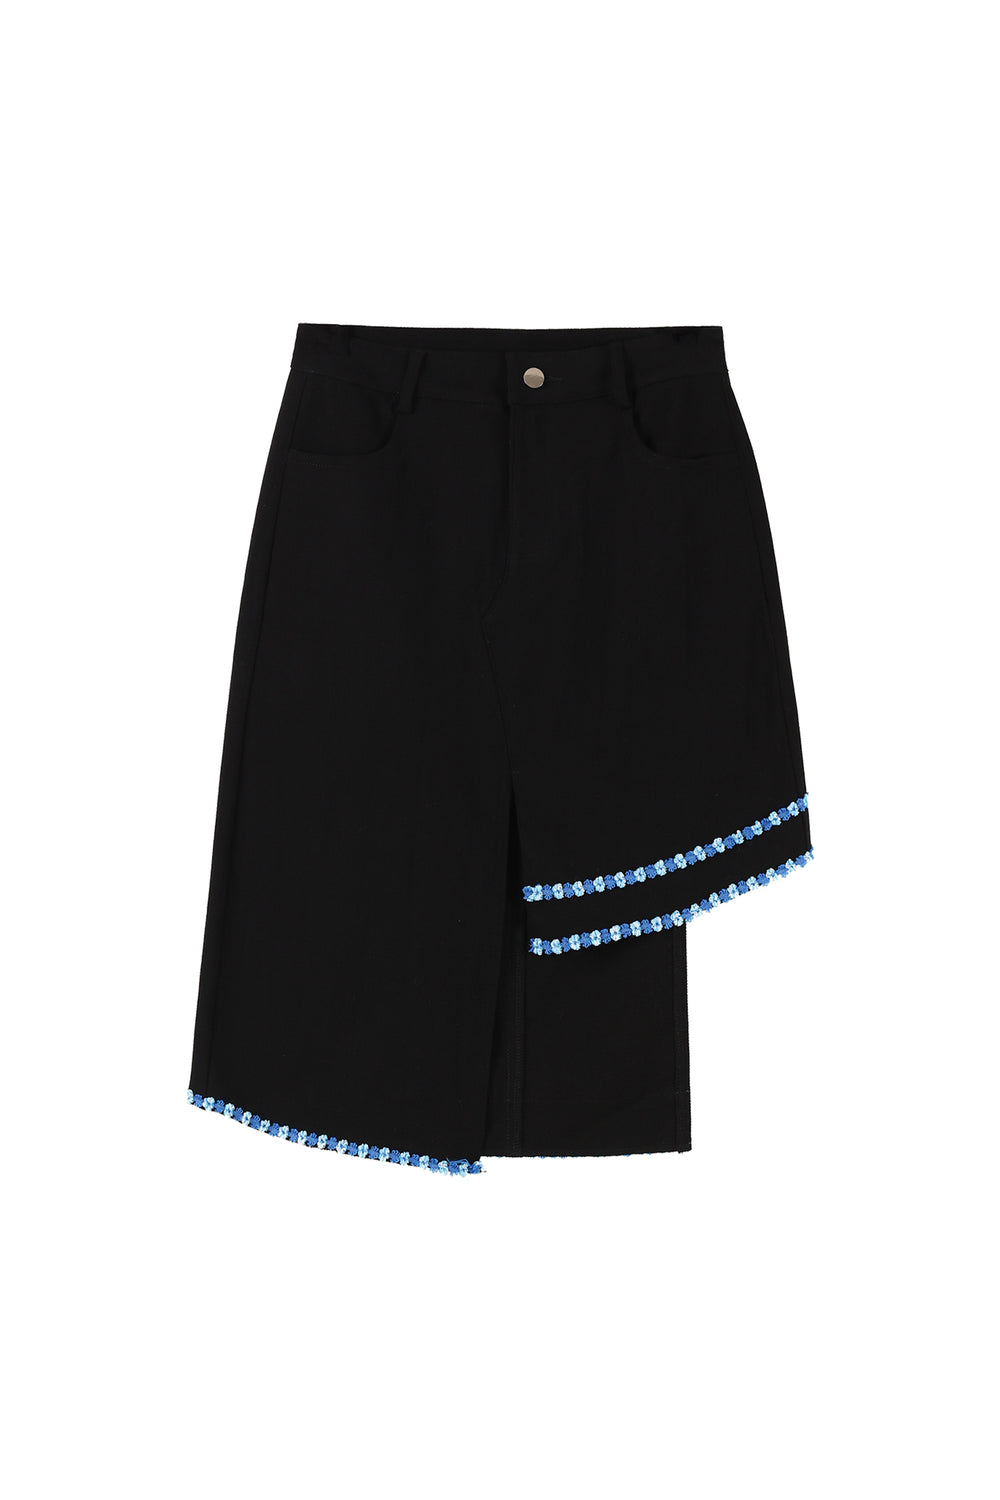 ZIZTAR Blossom Within the World Skirt - ZIZTAR